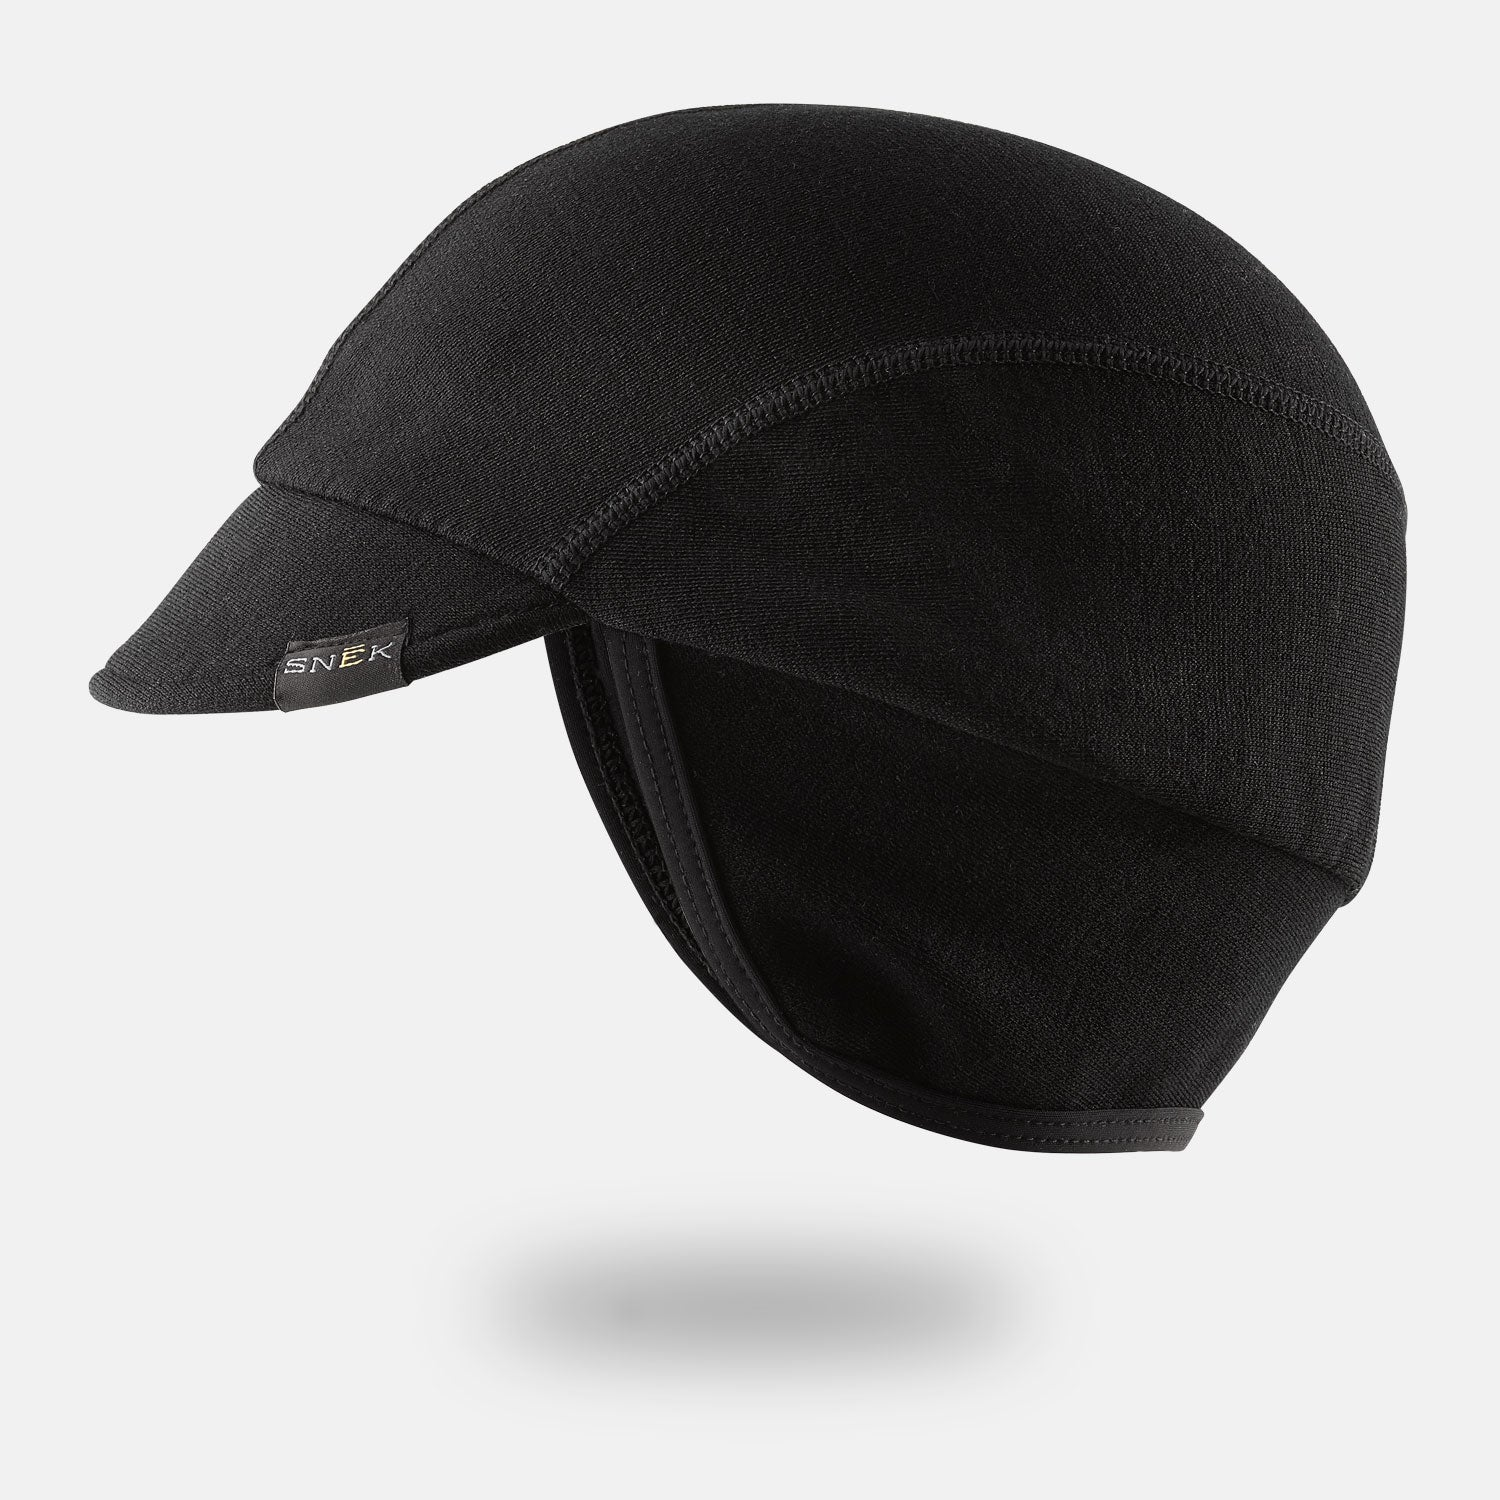 snek cycling heavyweight merino winter cap floating